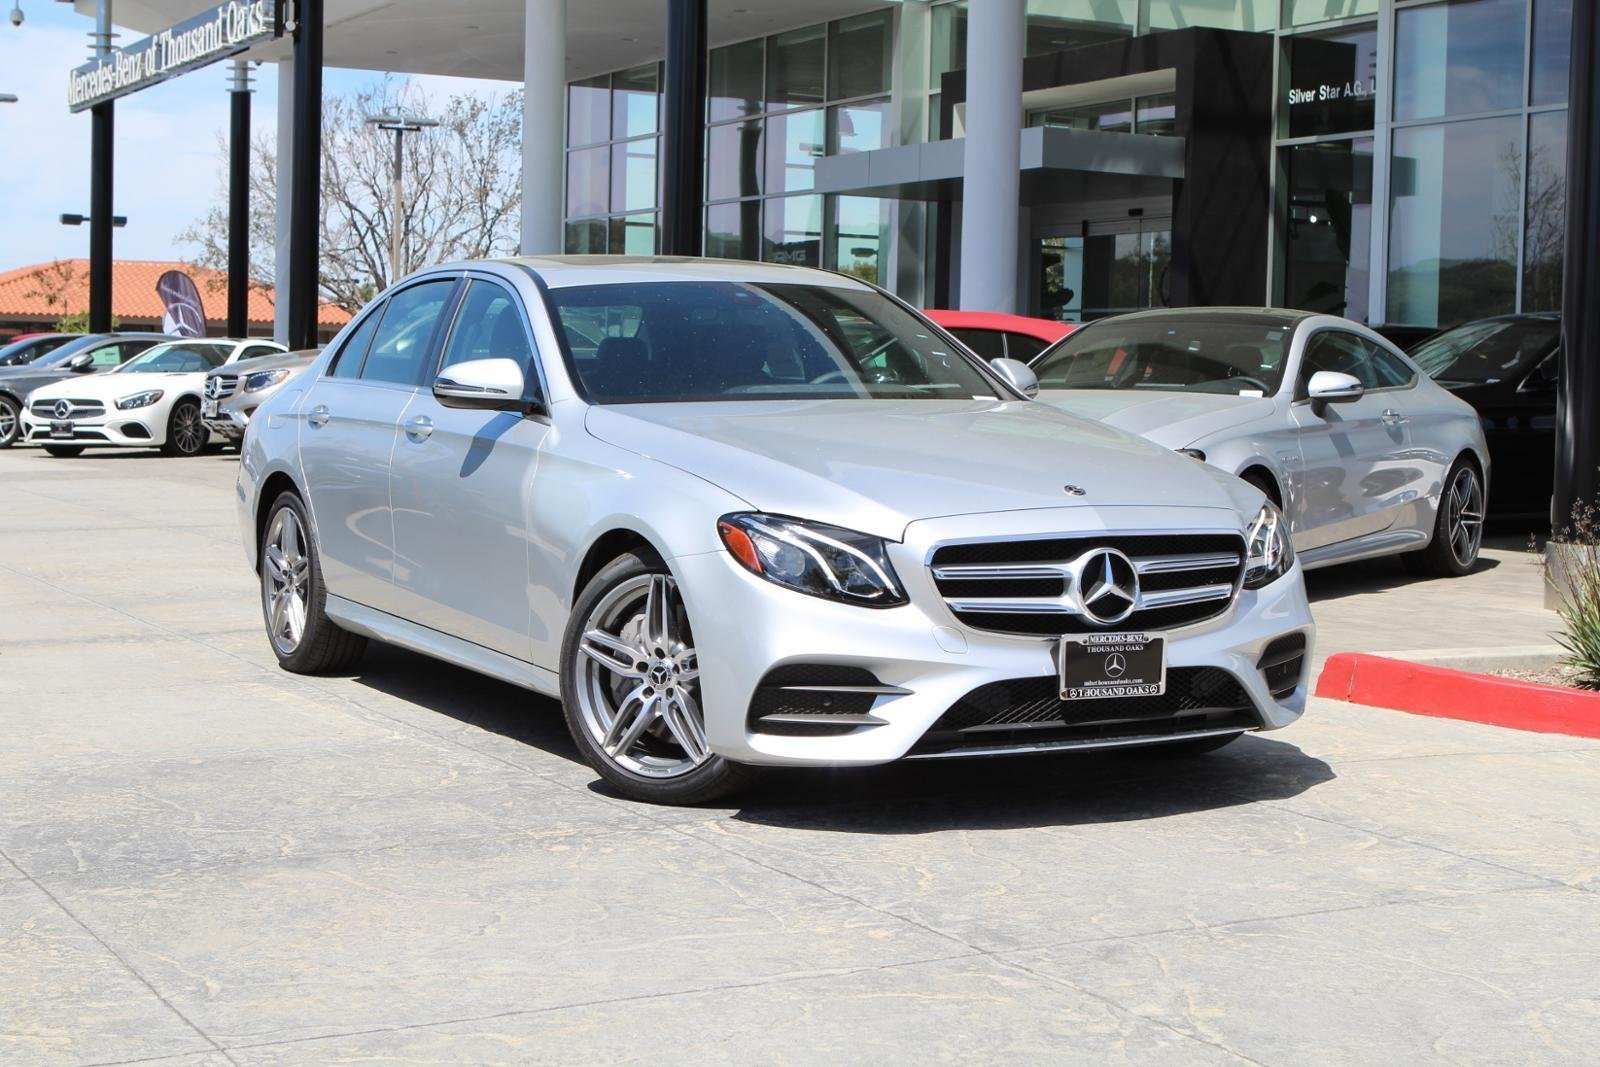 59 The Best 2019 Mercedes Benz E Class Price Design And Review